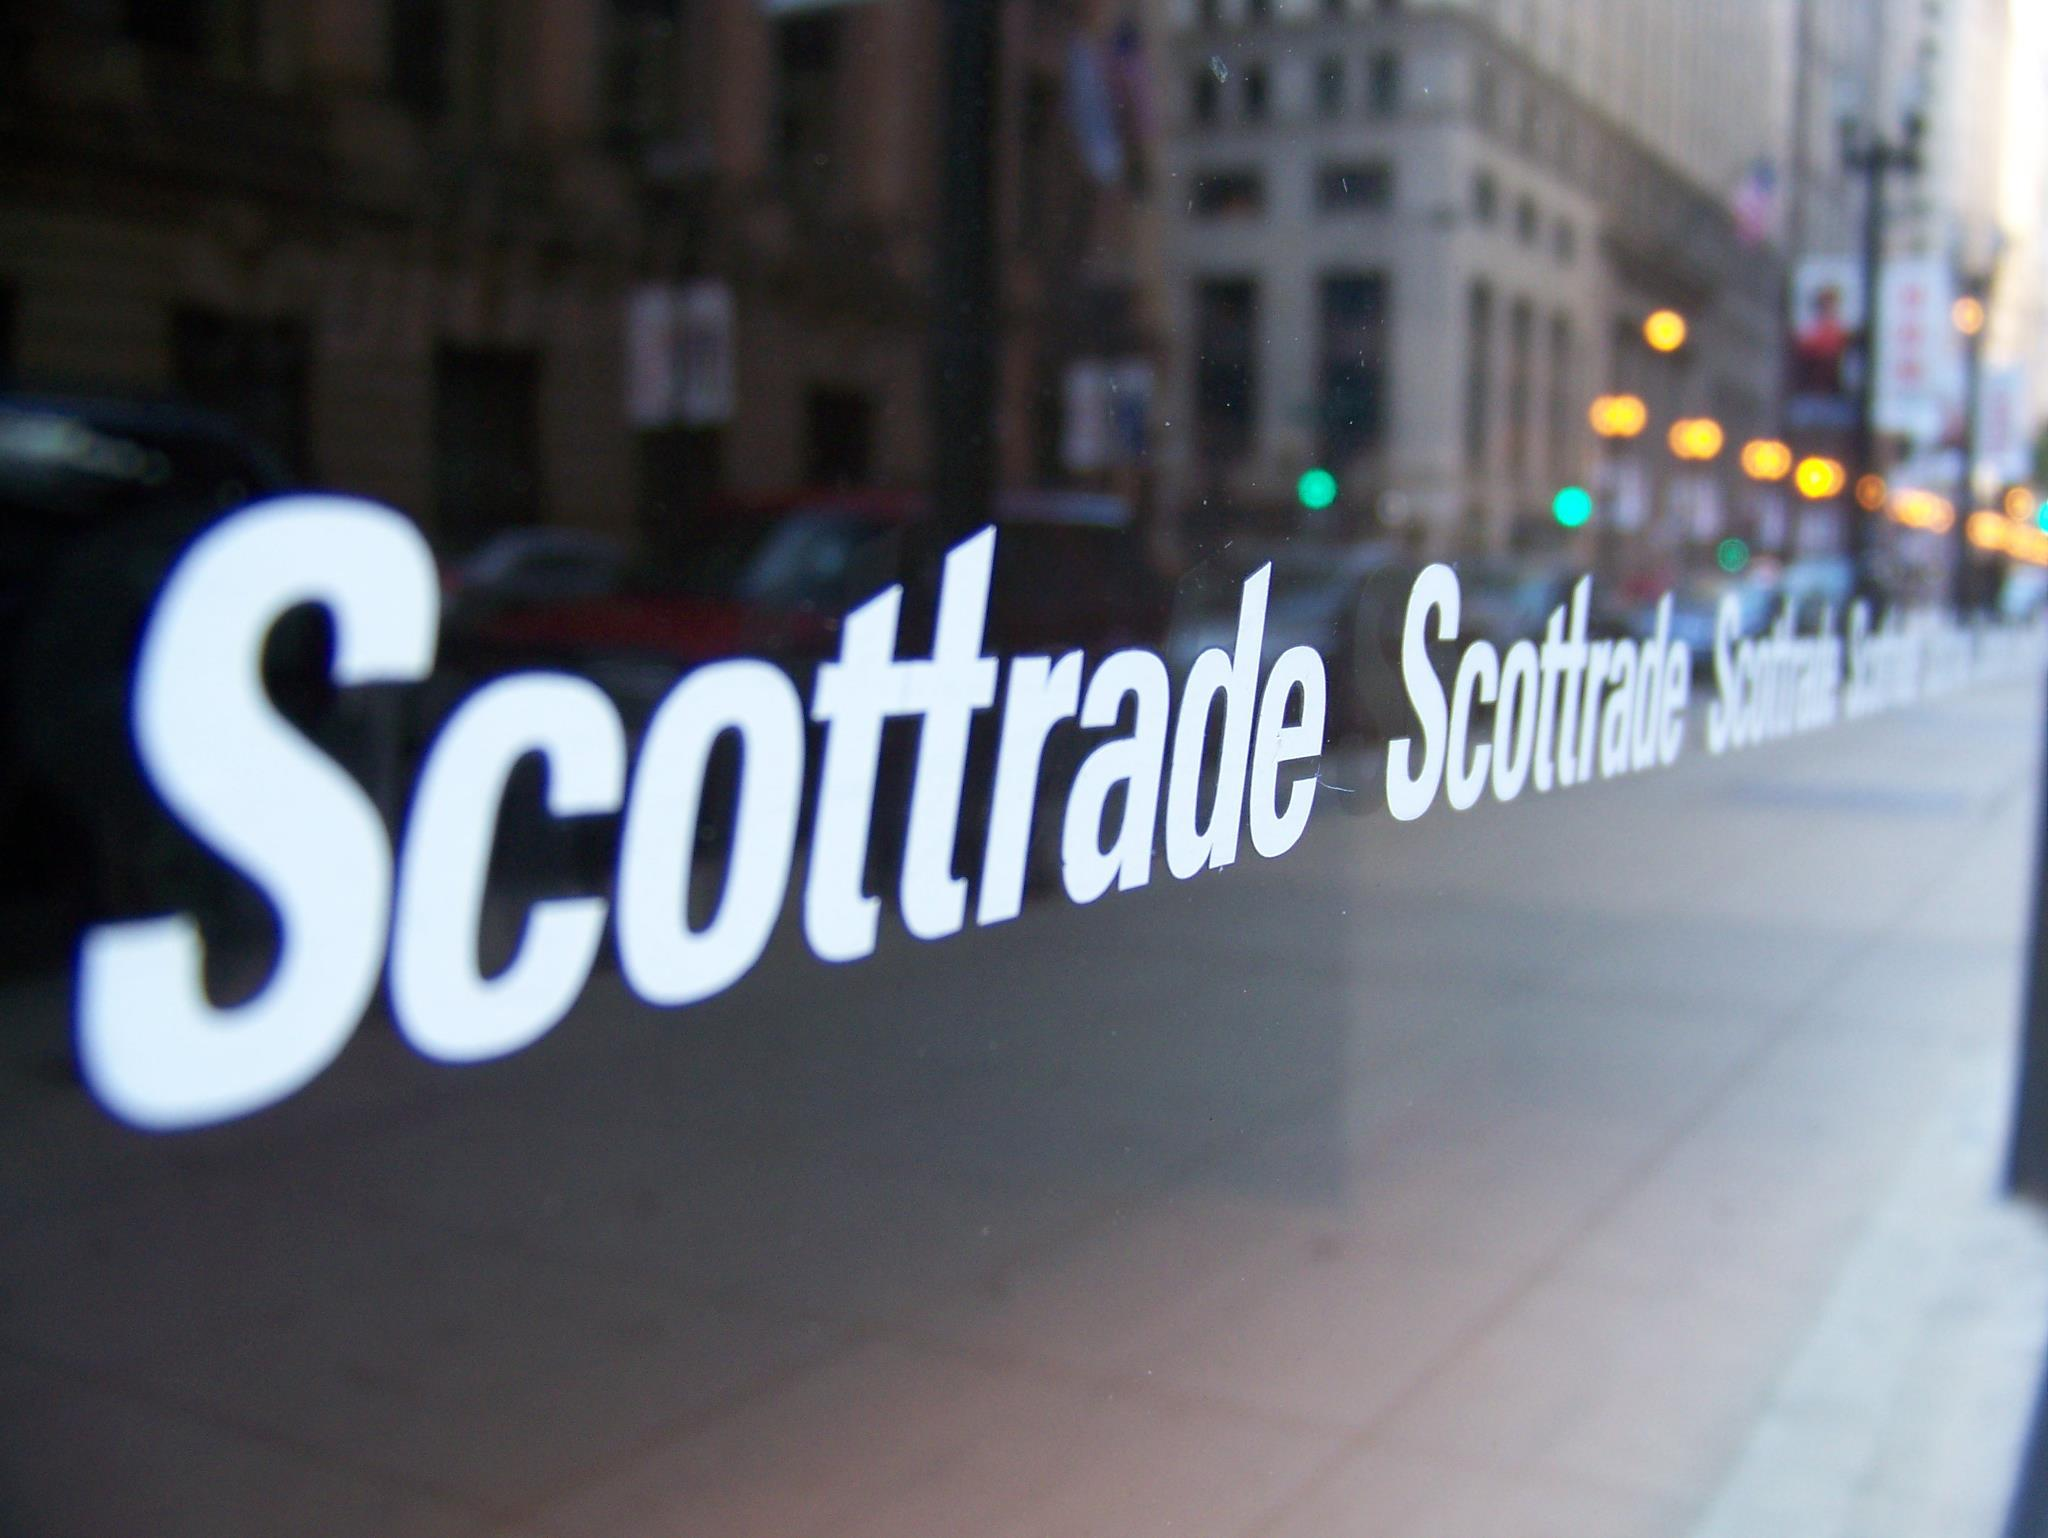 Scottrade call options